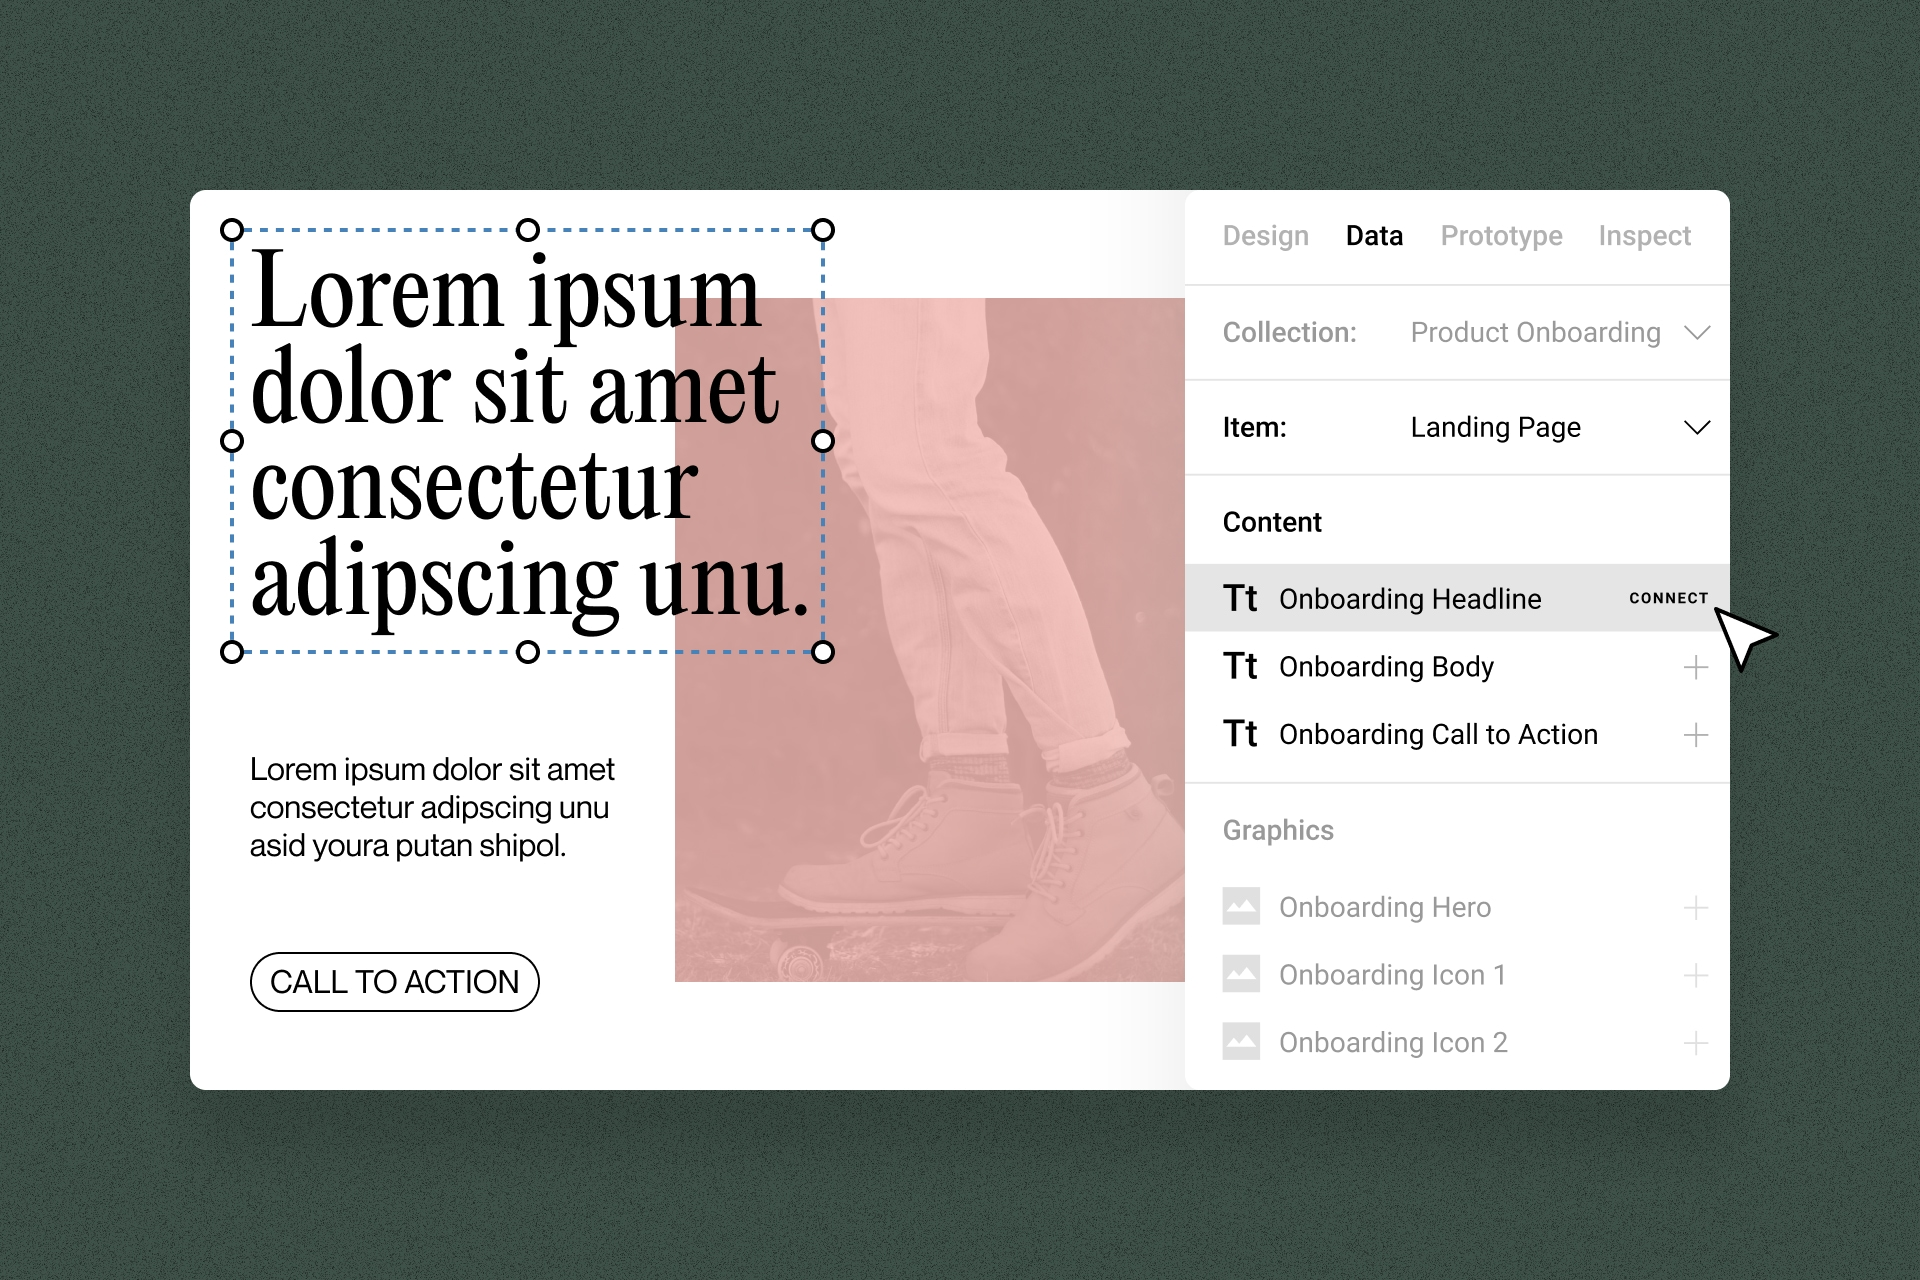 An example of what a design CMS could look like within a design tool